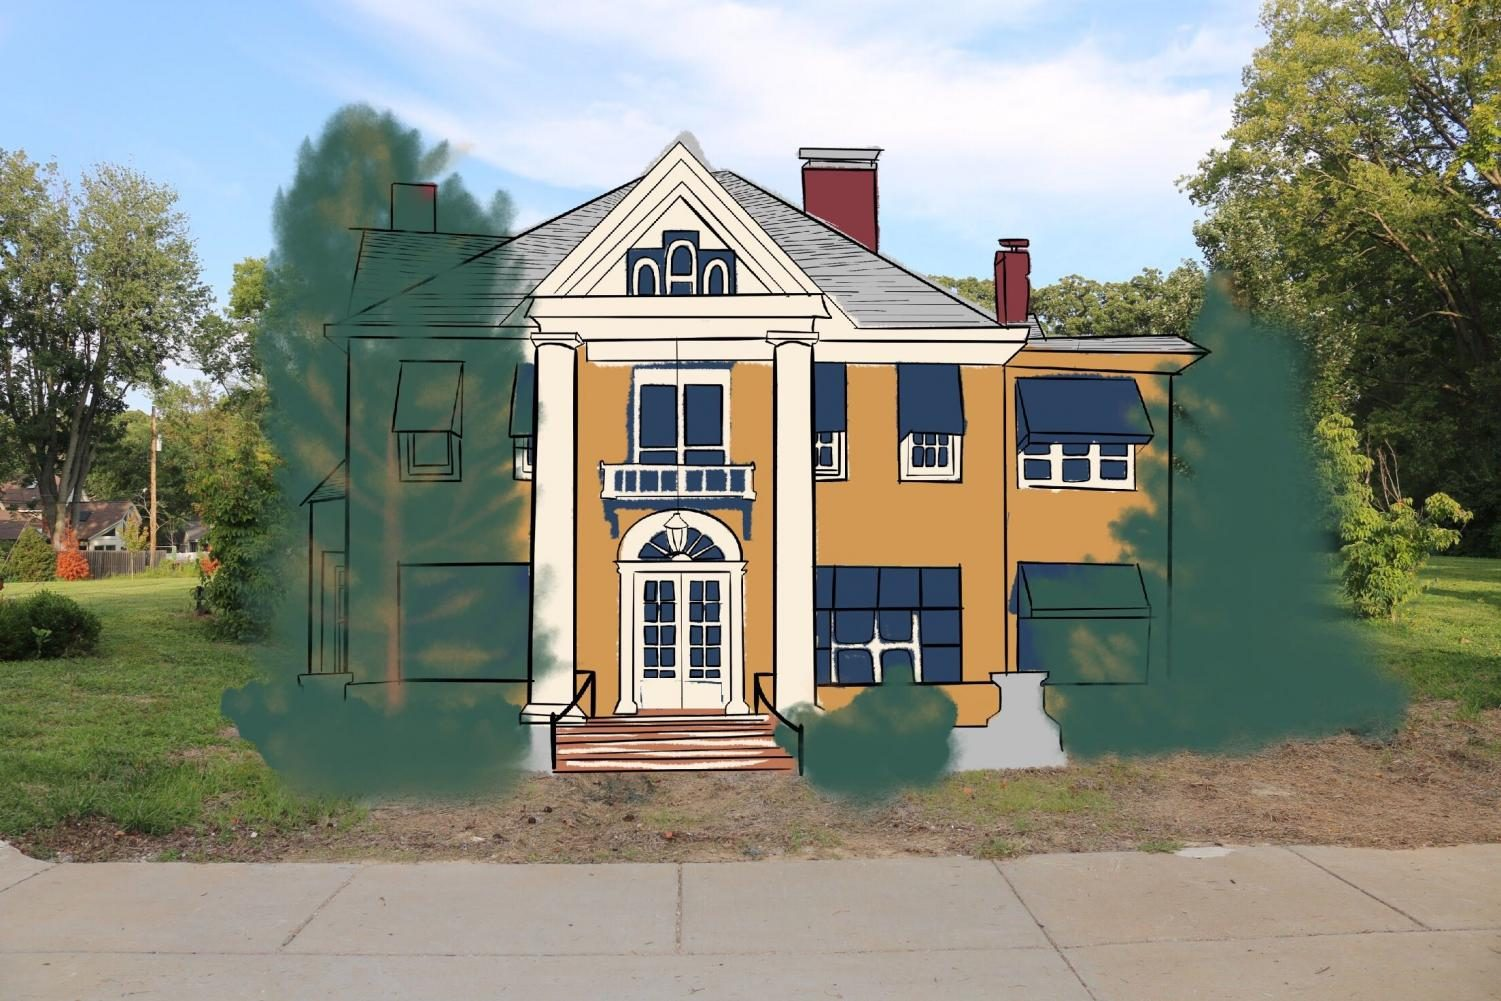 A drive down N. Taylor Ave is a showcase of Kirkwood's prime real estate. But for over six years, the nearly 2-acre lot where the historic house of 750 N. Taylor once stood, has been vacant.